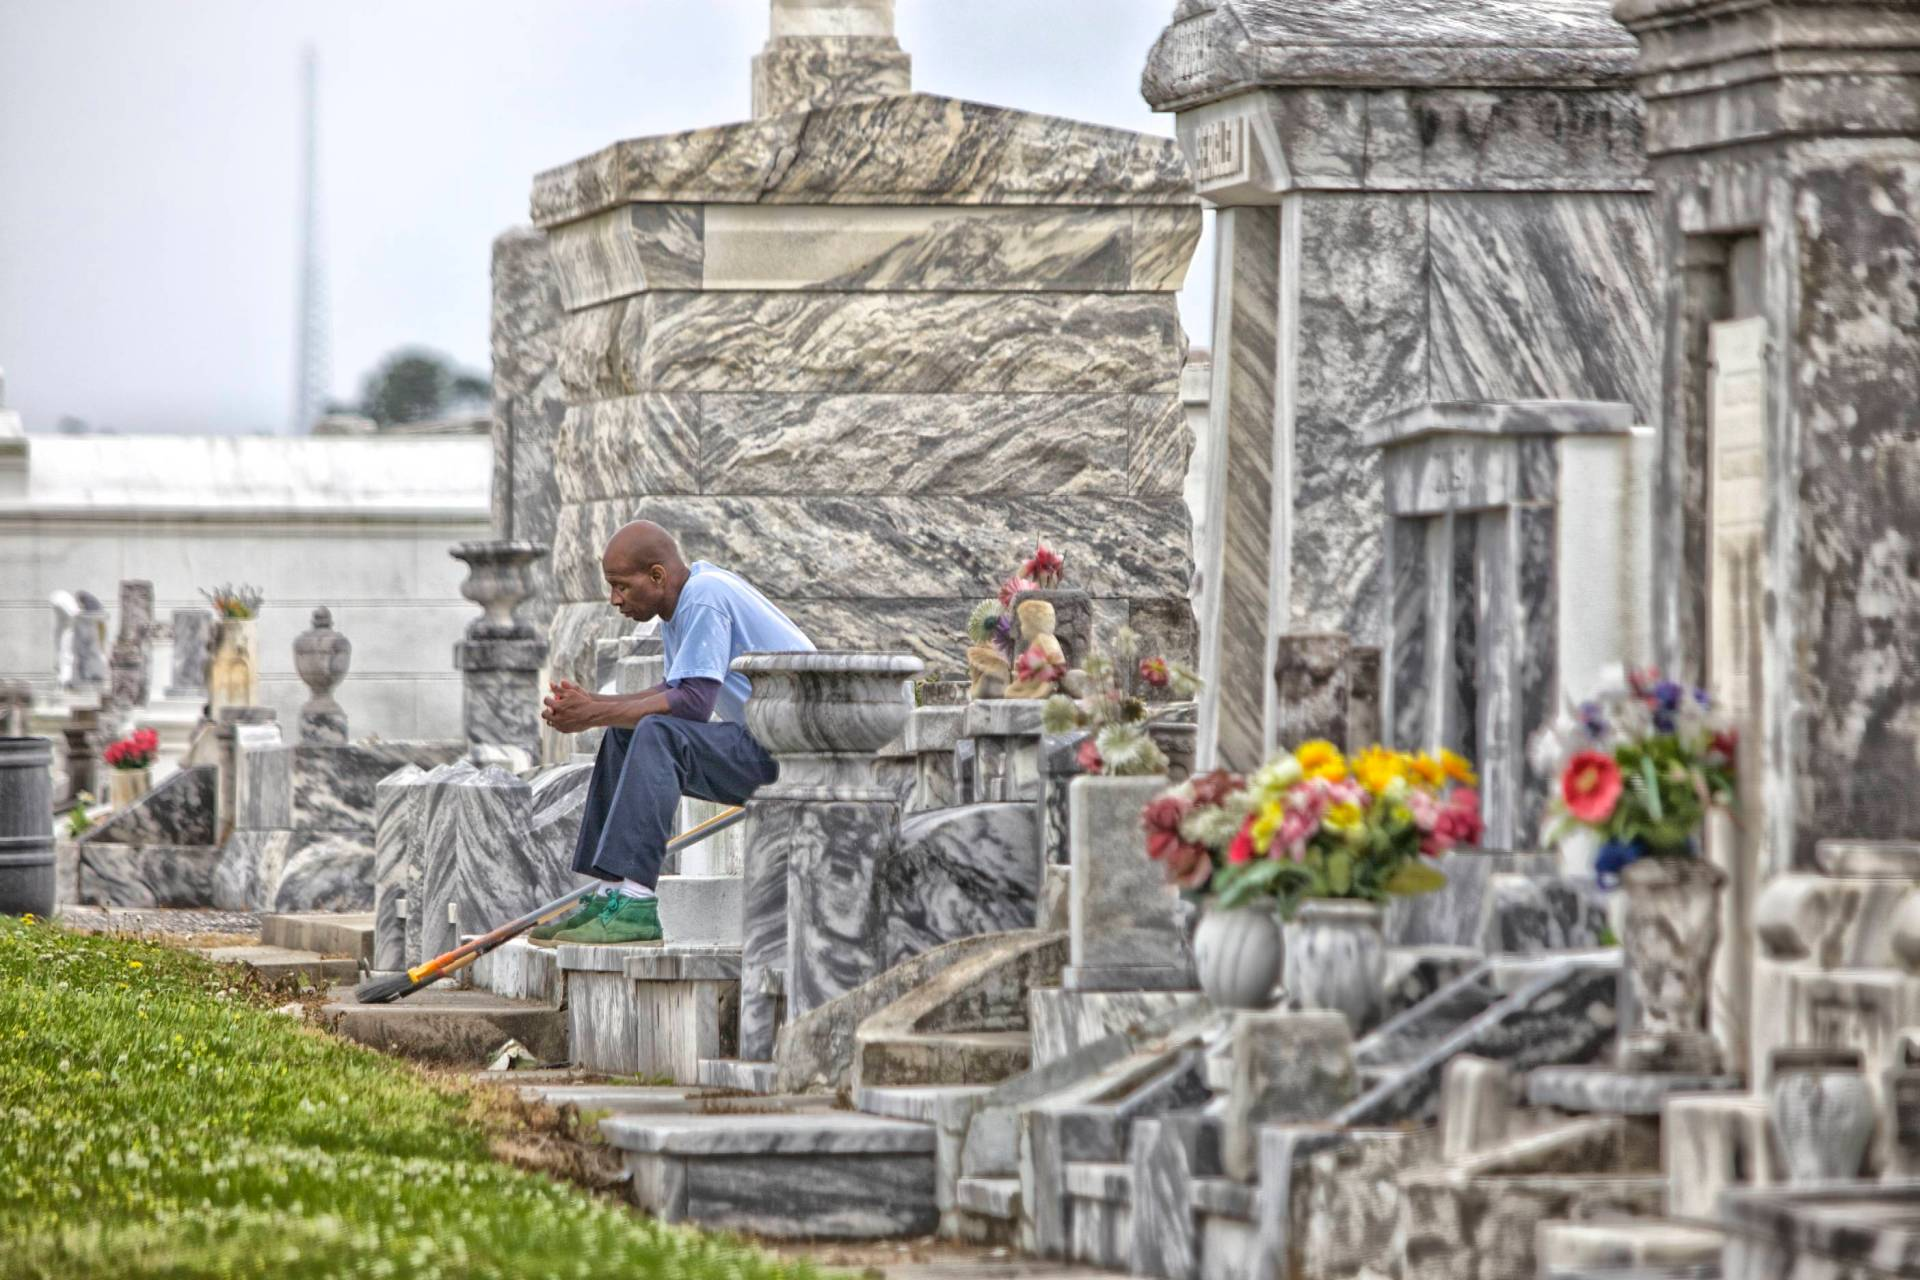 Worker at rest in New Orleans cemetery.